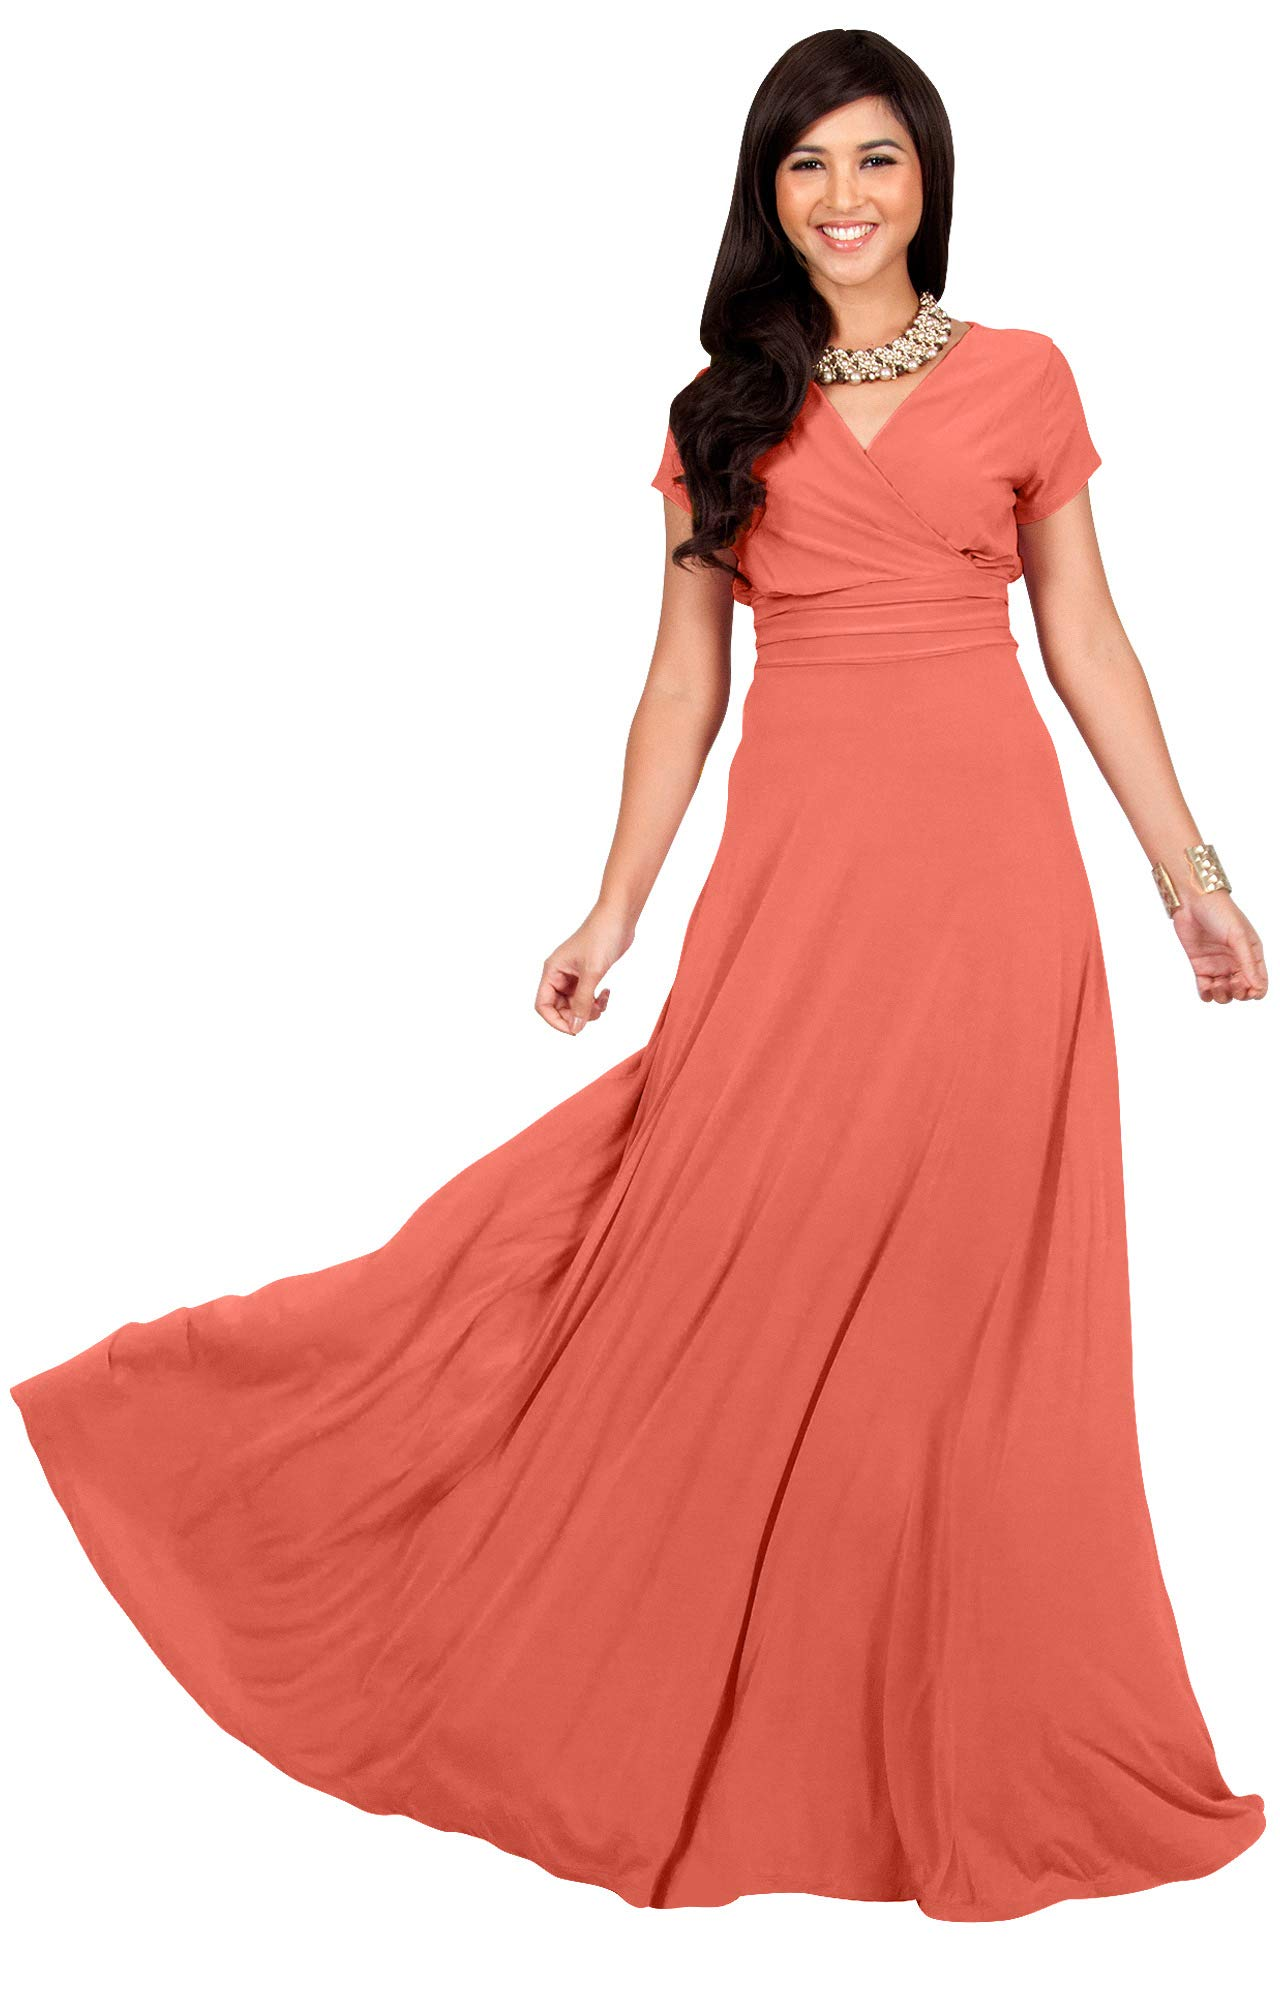 049e4213aac4 KOH KOH Plus Size Womens Long Cap Short Sleeve V-Neck Flowy Cocktail  Slimming Summer Sexy Casual Formal Sun Sundress Work Cute Gown Gowns Maxi  Dress Dresses ...